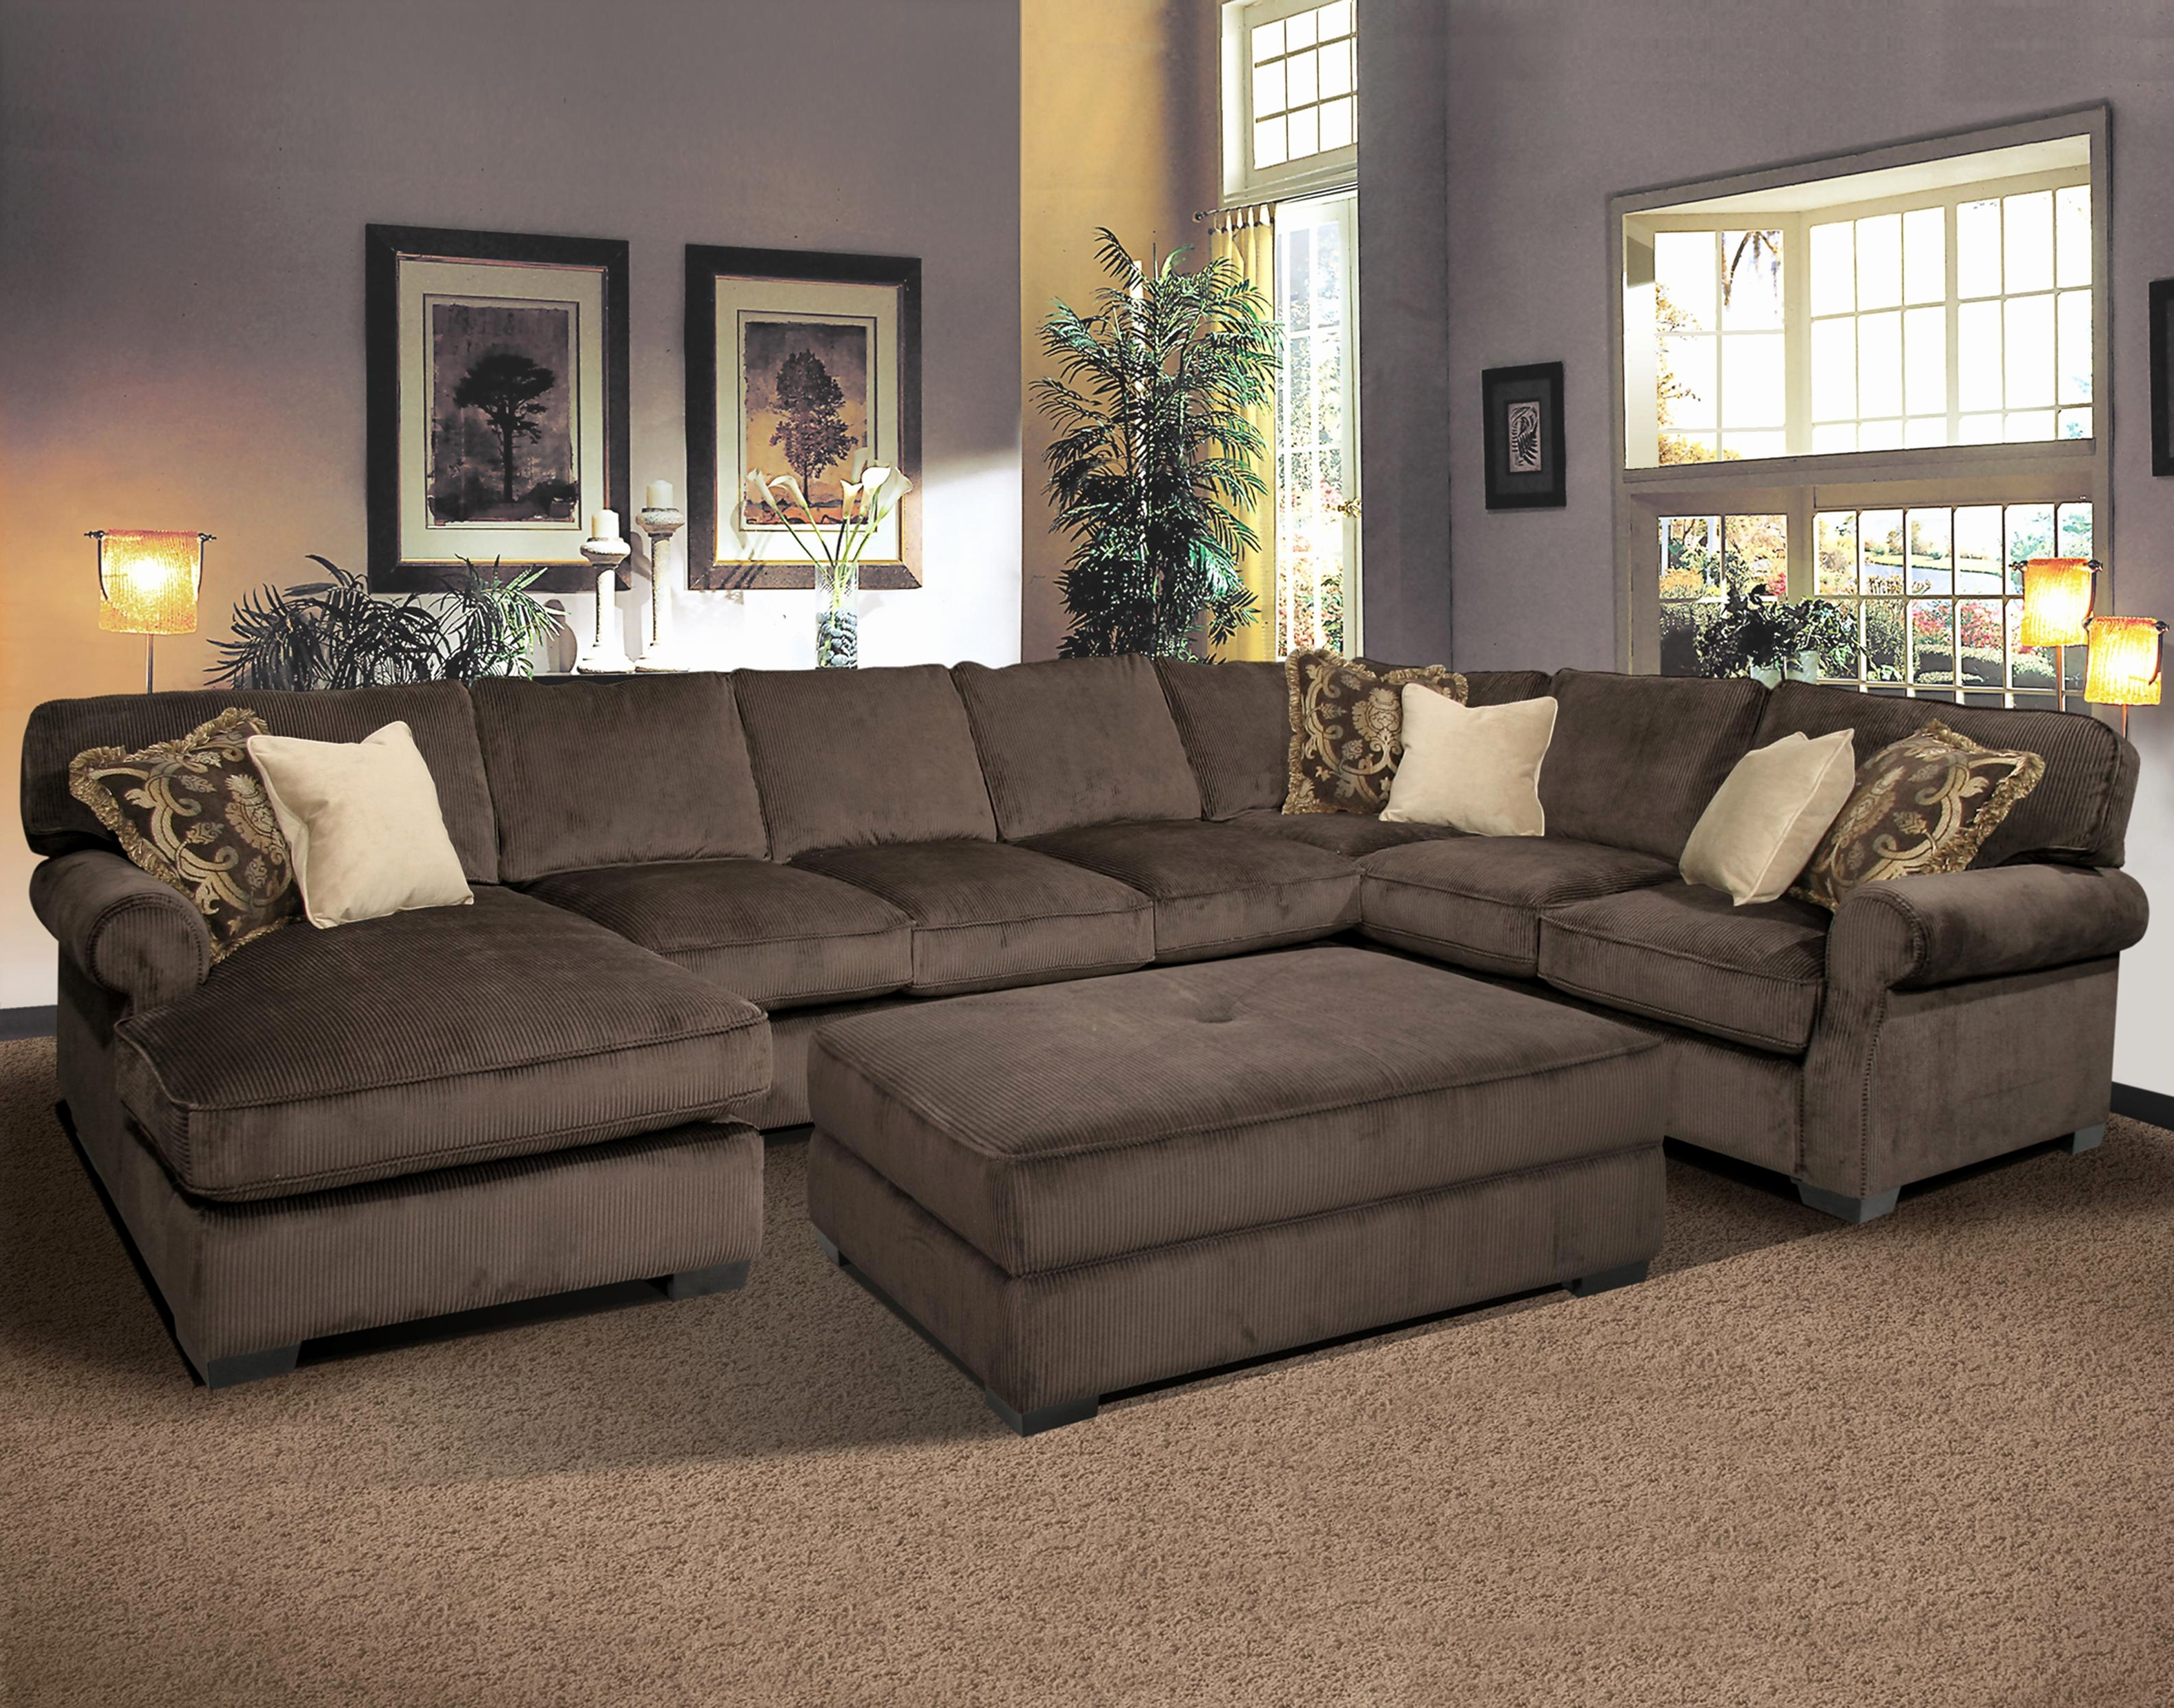 Sofas : Corner Sofa 2 Seater Sofa Quality Sofa Brands High Quality Intended  For Current High